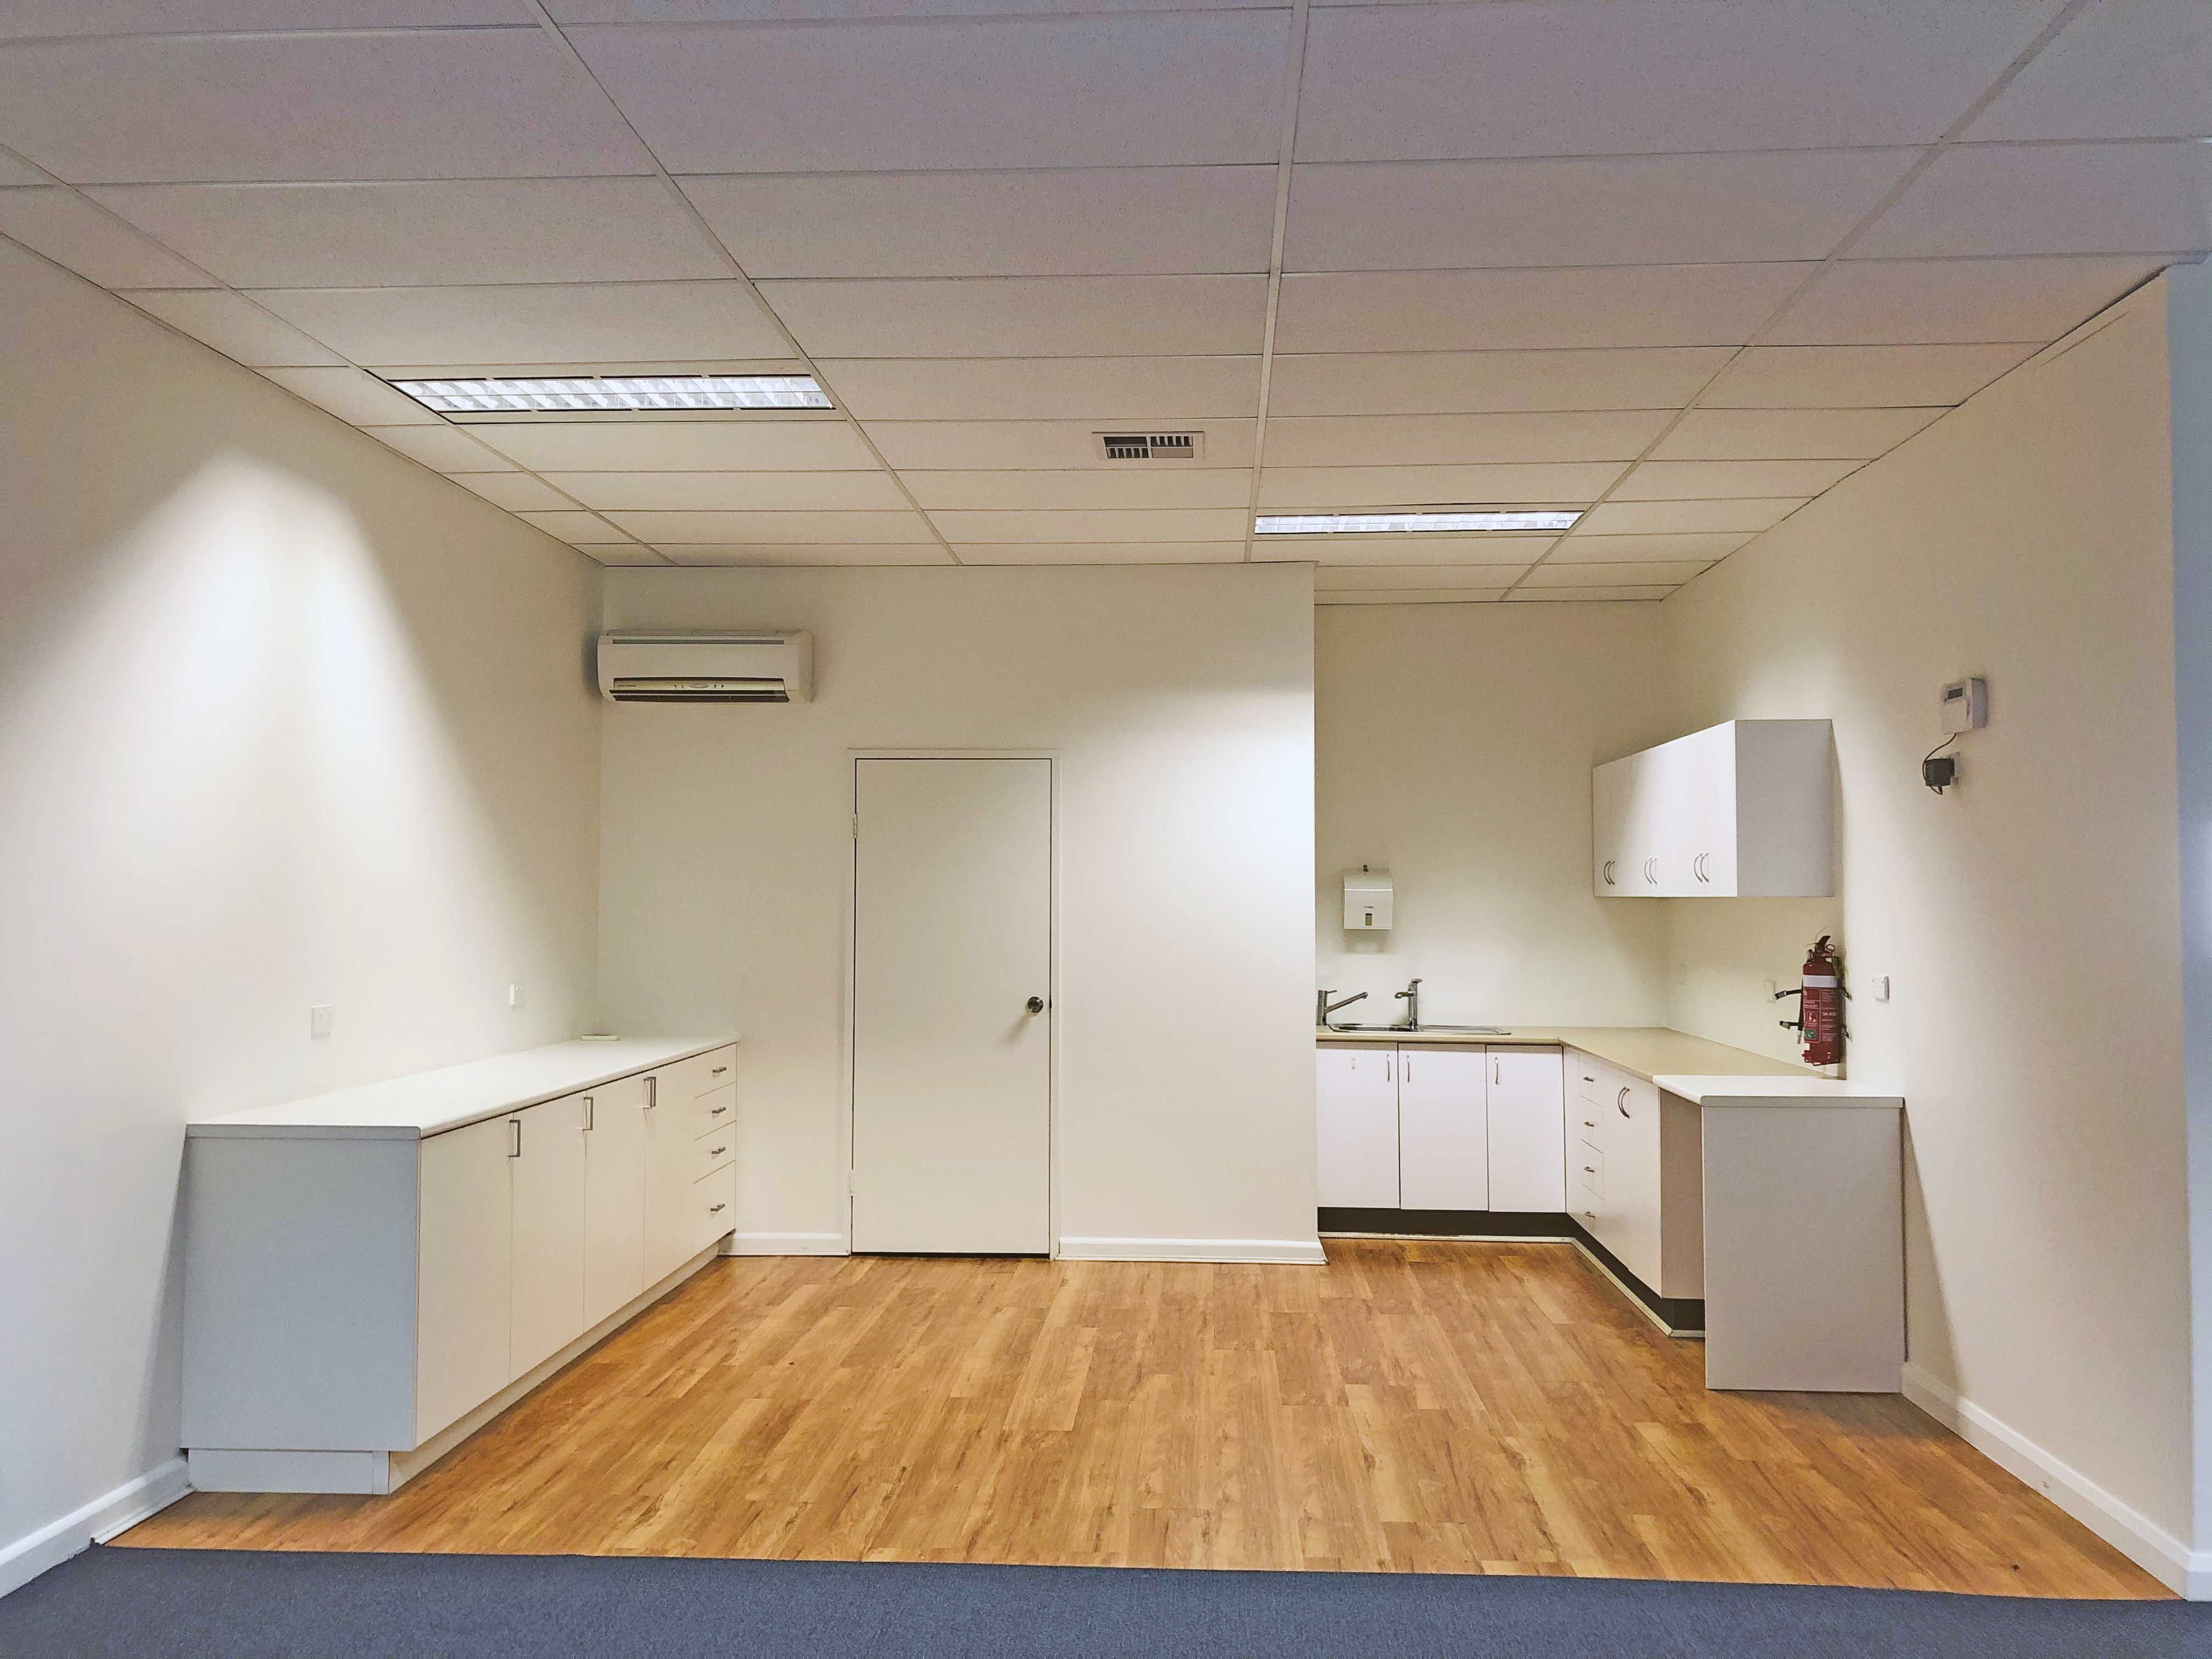 Commercial property for lease in macquarie park 3